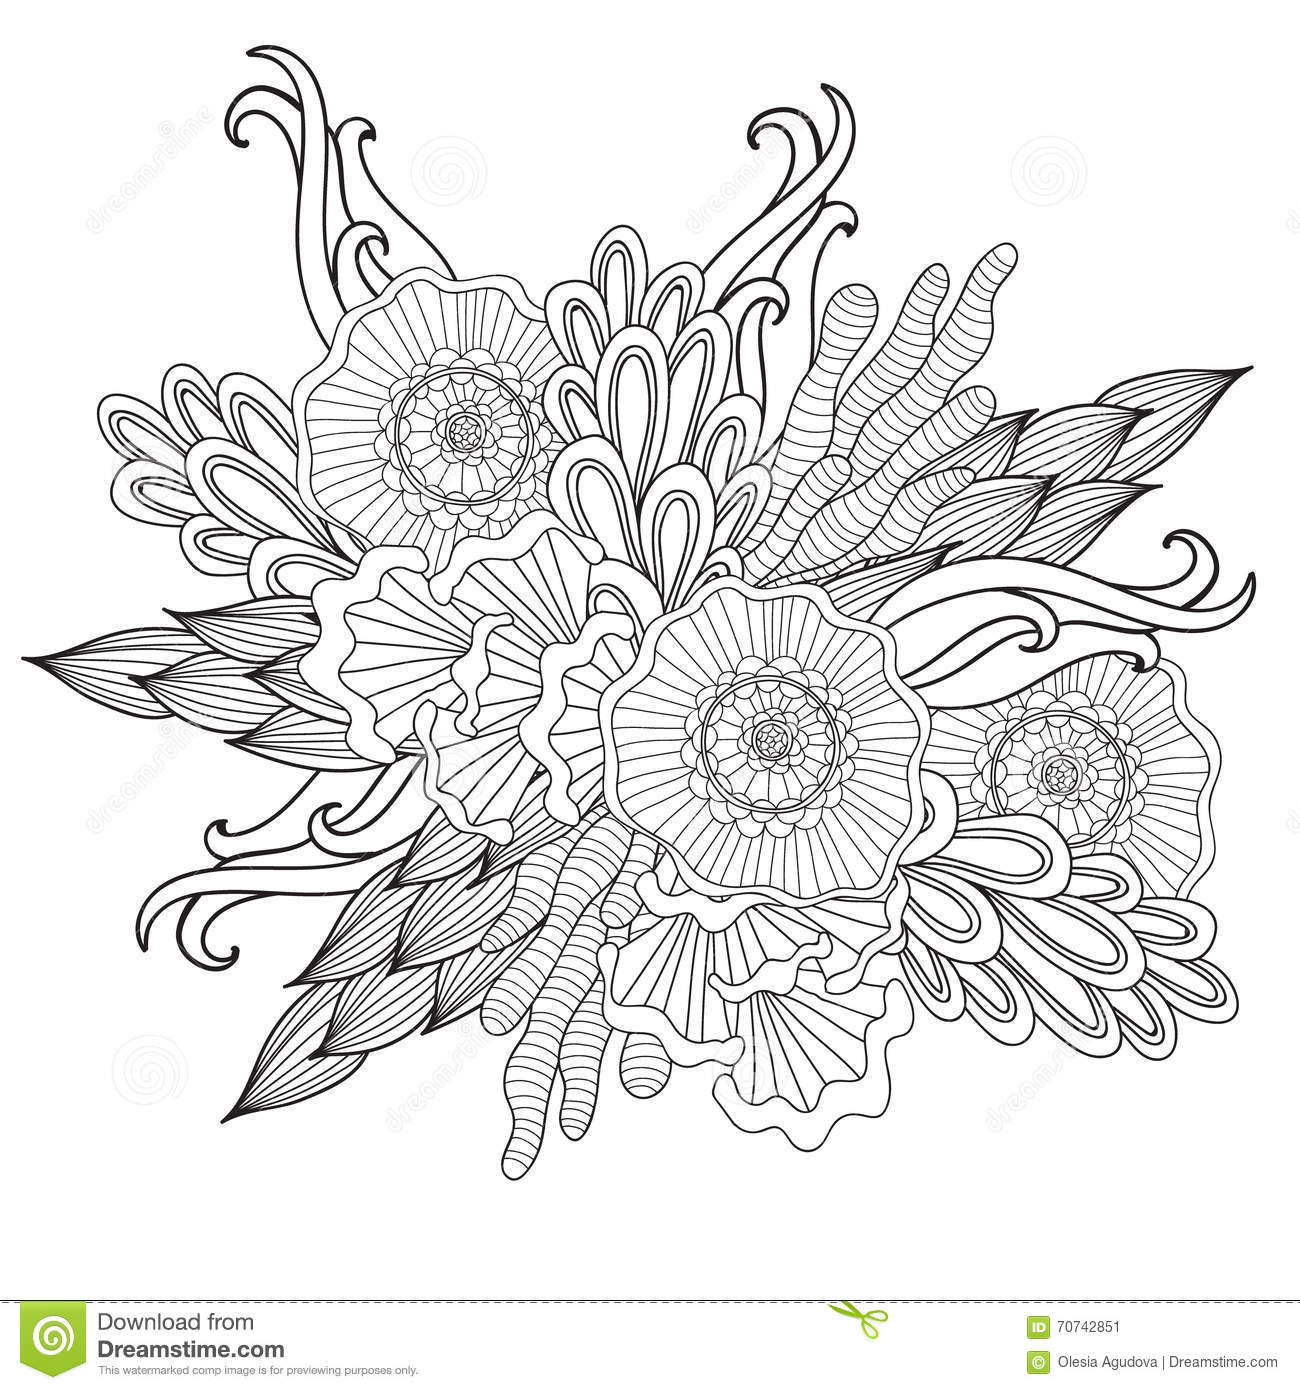 Hand Drawn Coloring Pages  Hand Drawn Artistic Ethnic Ornamental Patterned Floral